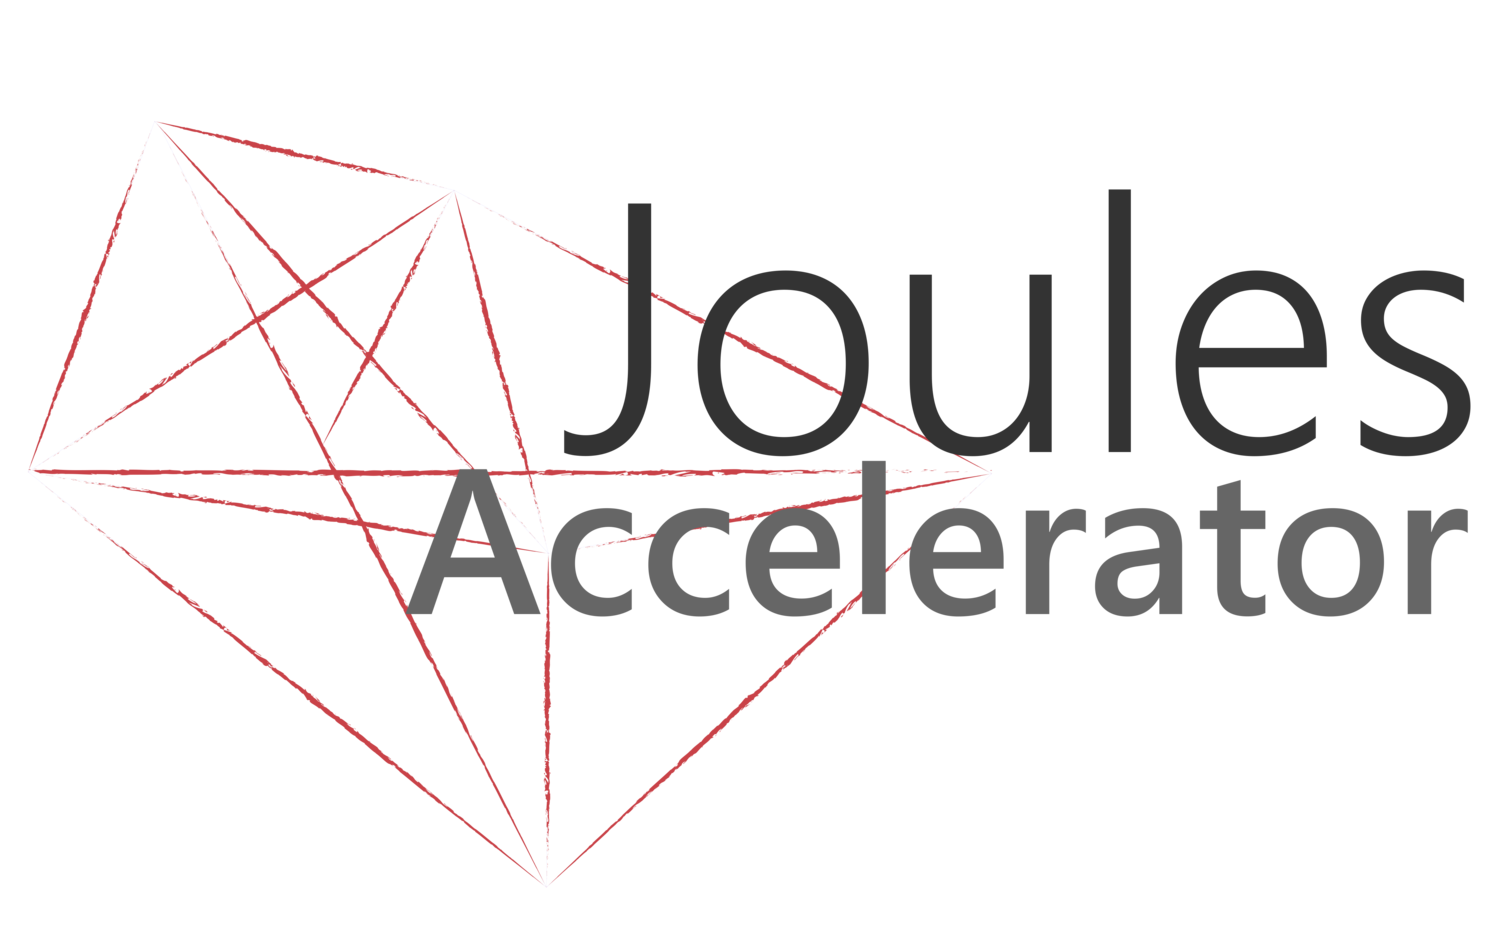 Joules Accelerator